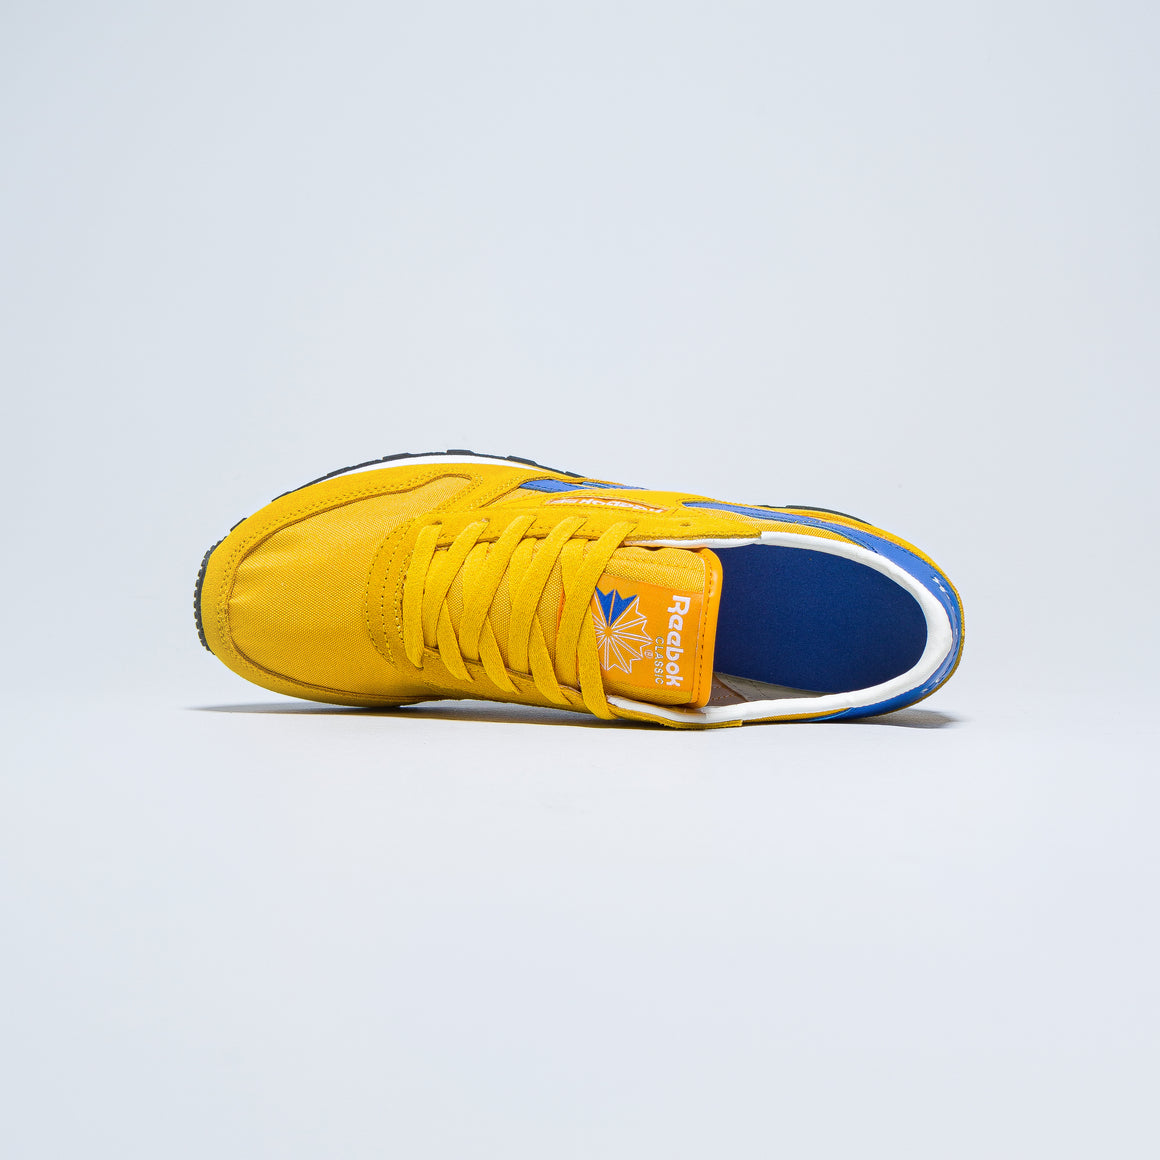 Reebok - CL Leather AZ - Fierce Gold/Collegiate Gold - Up There